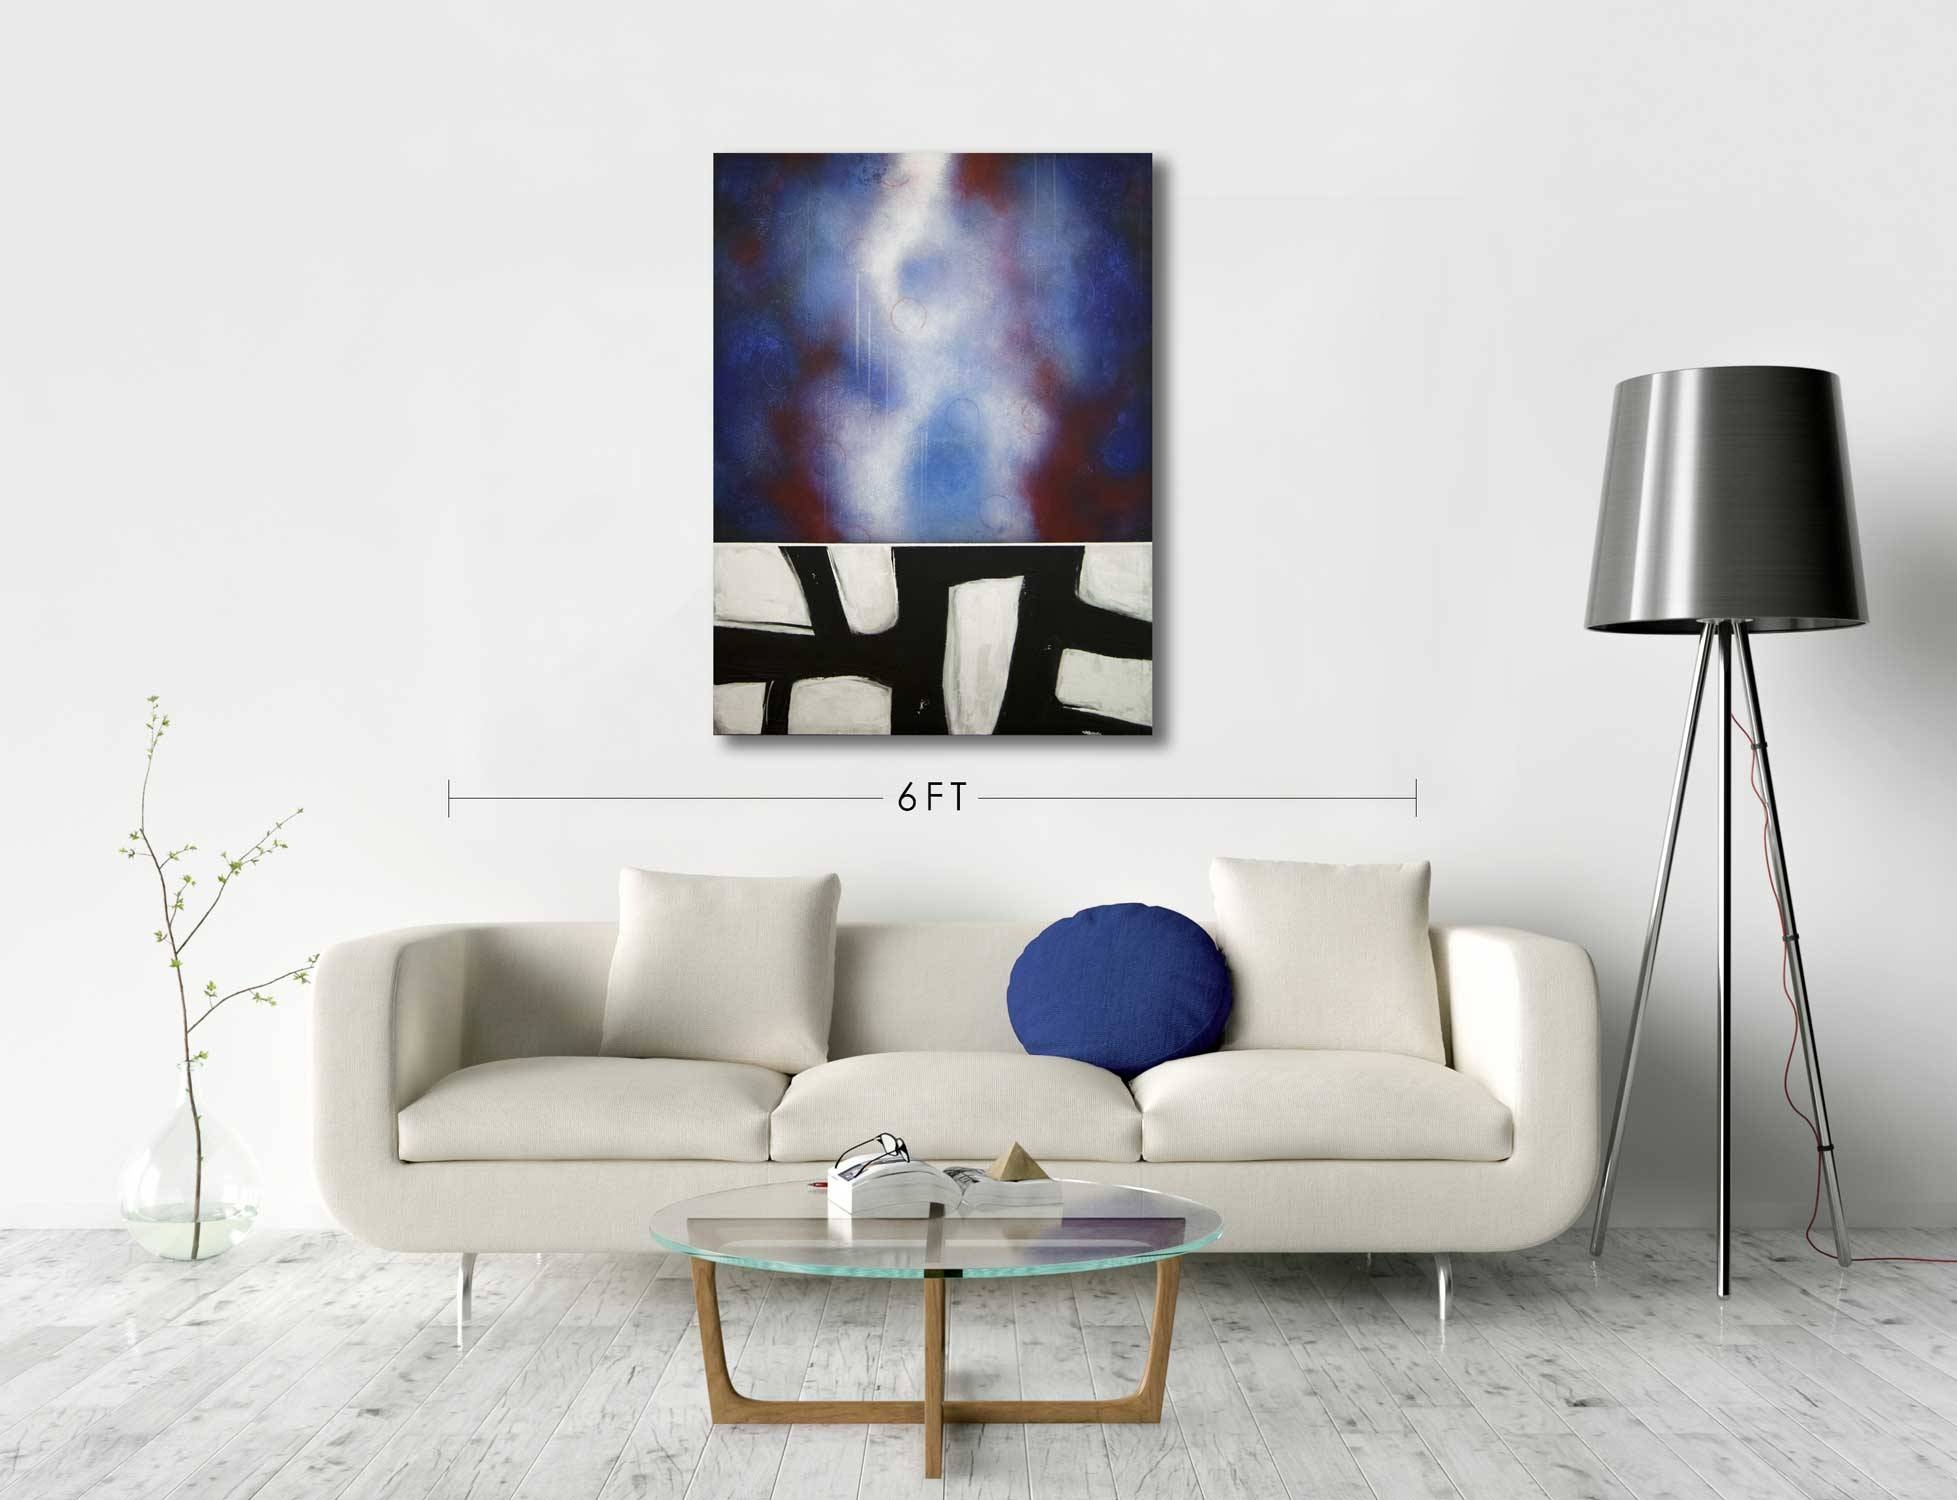 Abstract Metal Wall Art Cheap Wall Art For Living Room Ideas Within Most Recently Released Cheap Abstract Metal Wall Art (View 18 of 20)